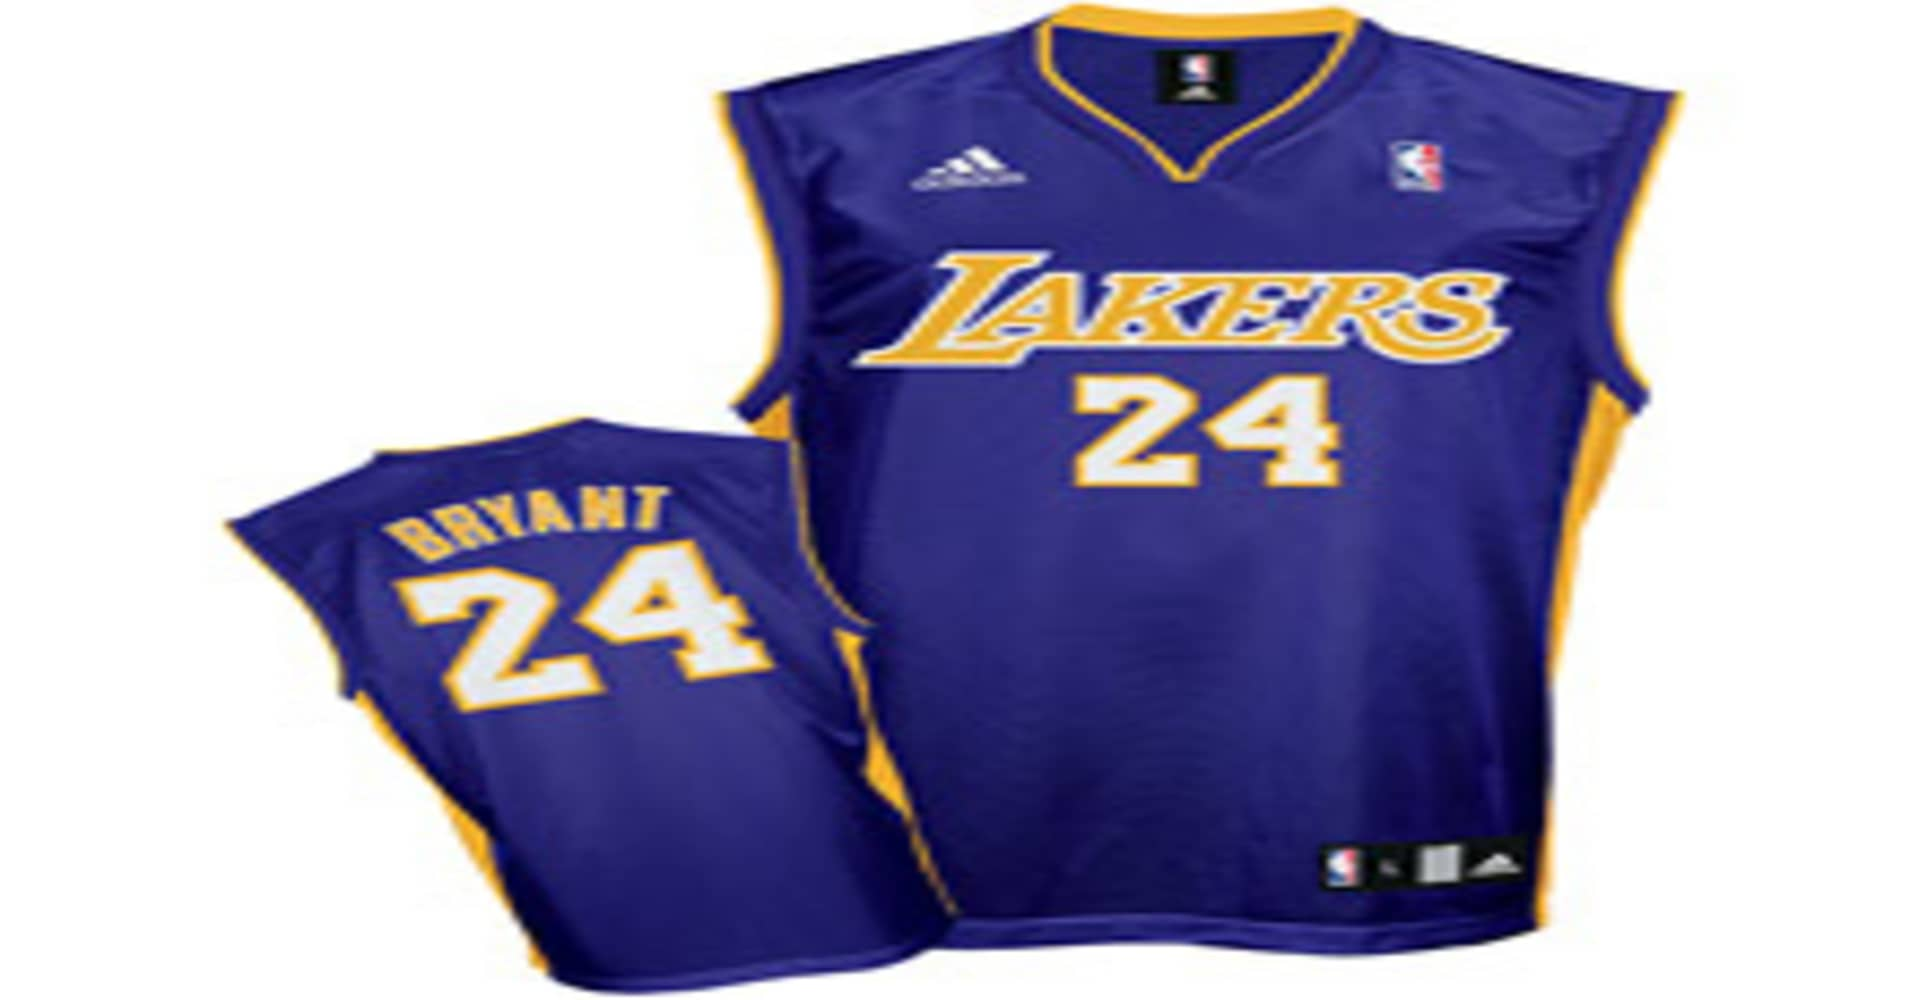 Best Selling NBA Jerseys In China